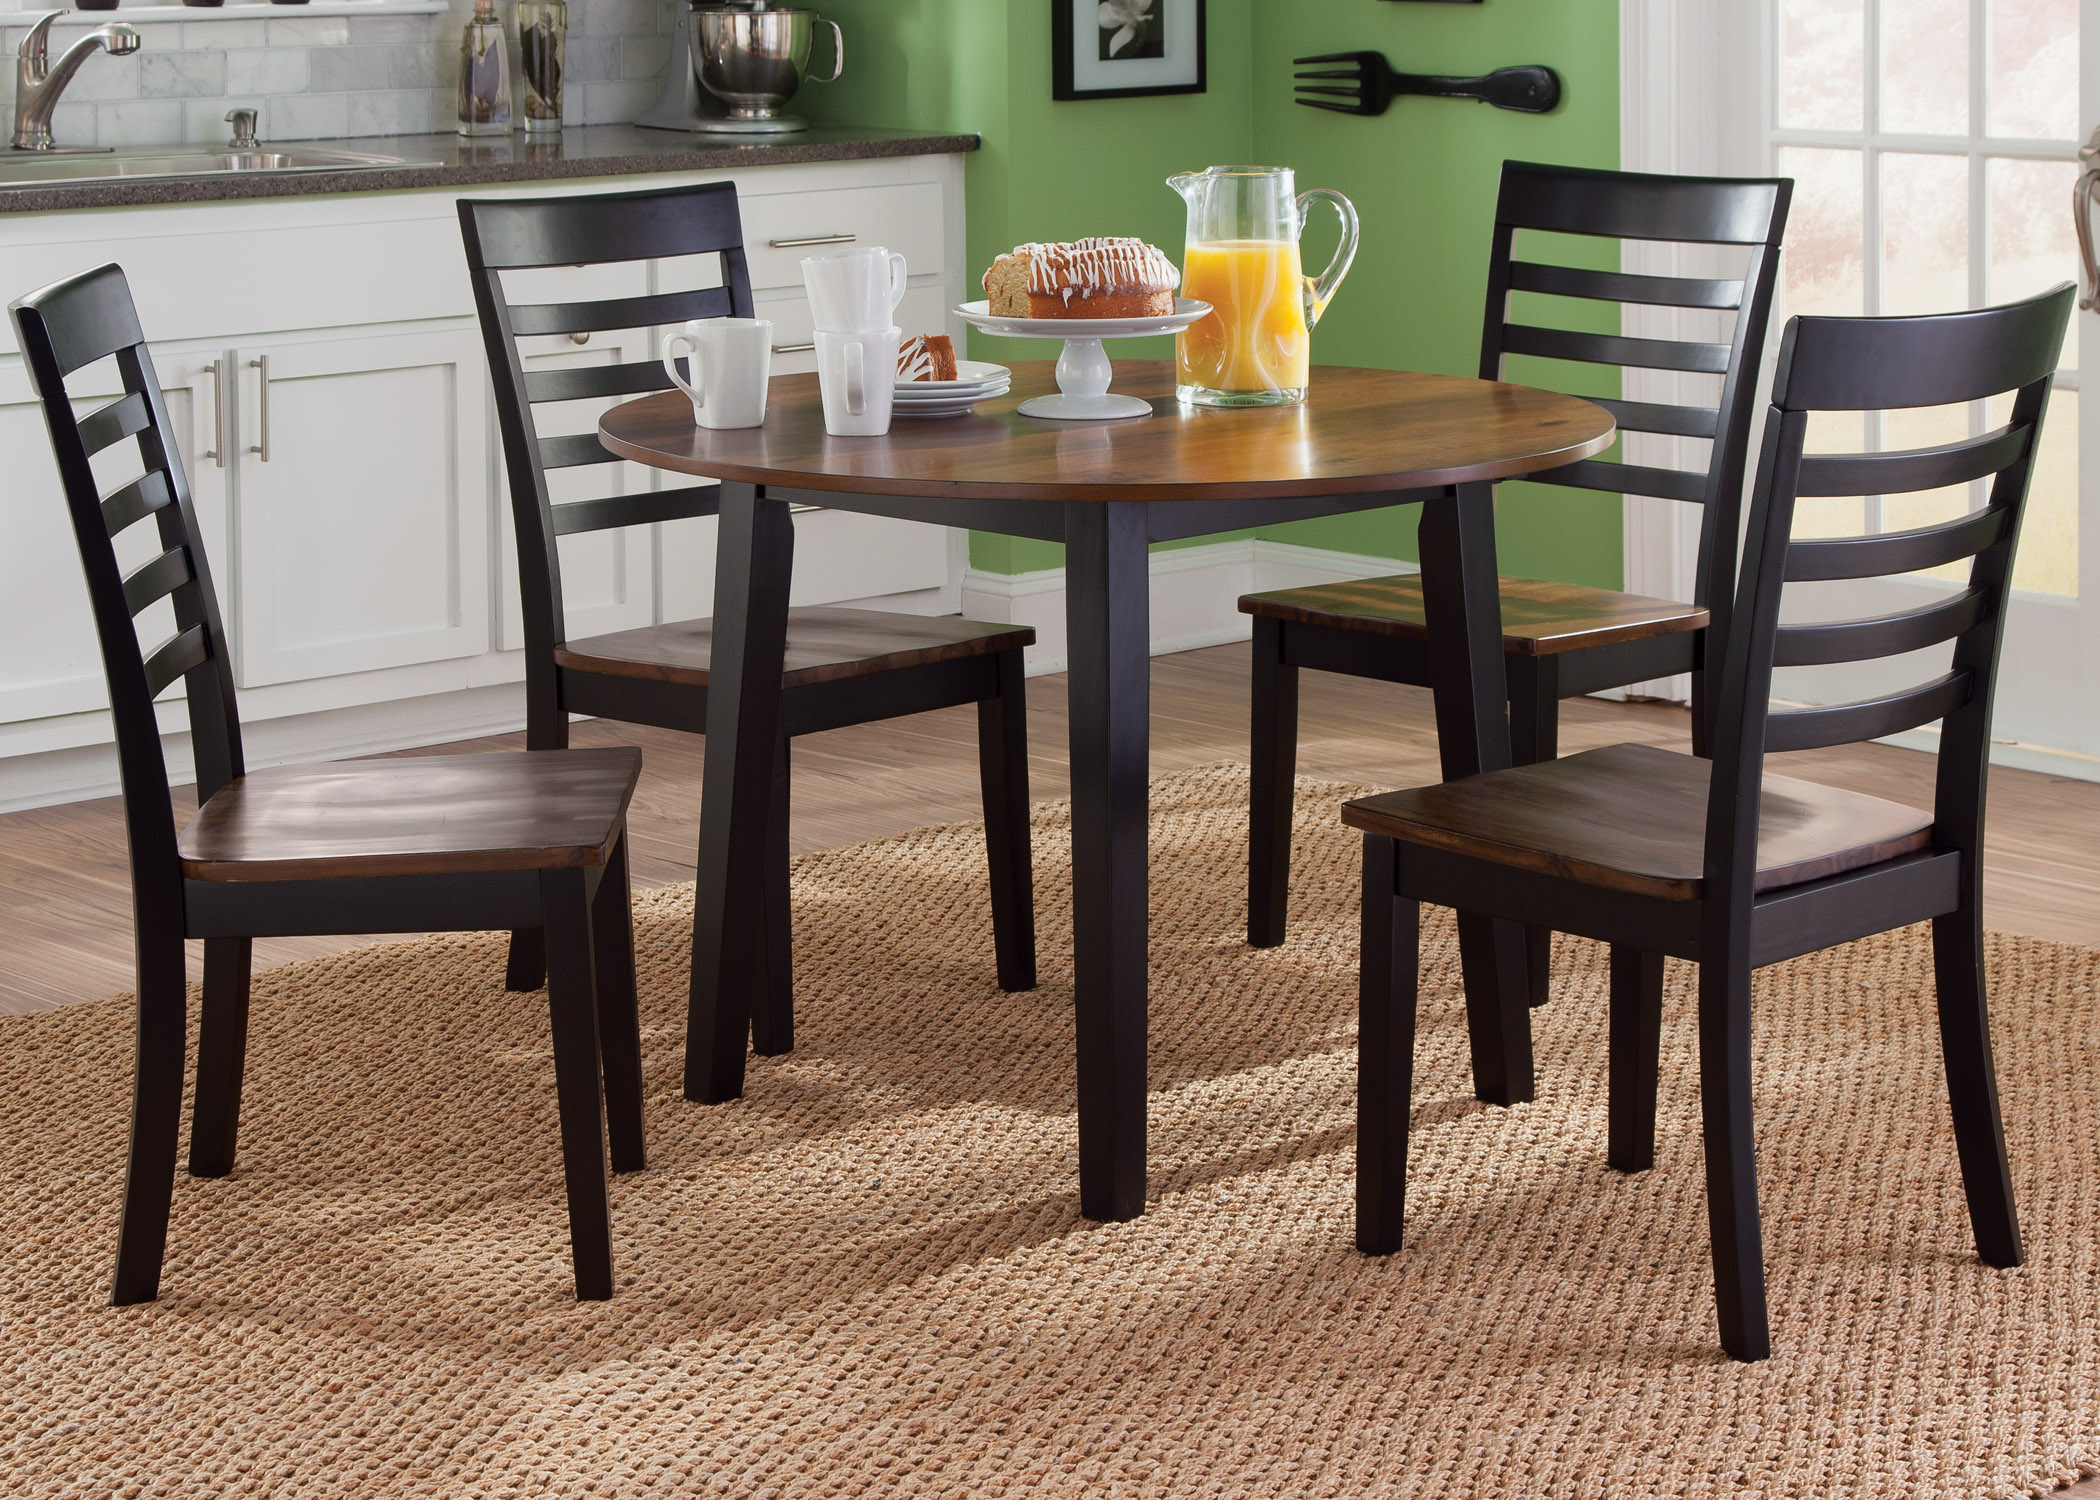 Liberty Furniture Cafe Dining 5 Piece Round Table Set - Item Number: 56-CD-5ROS